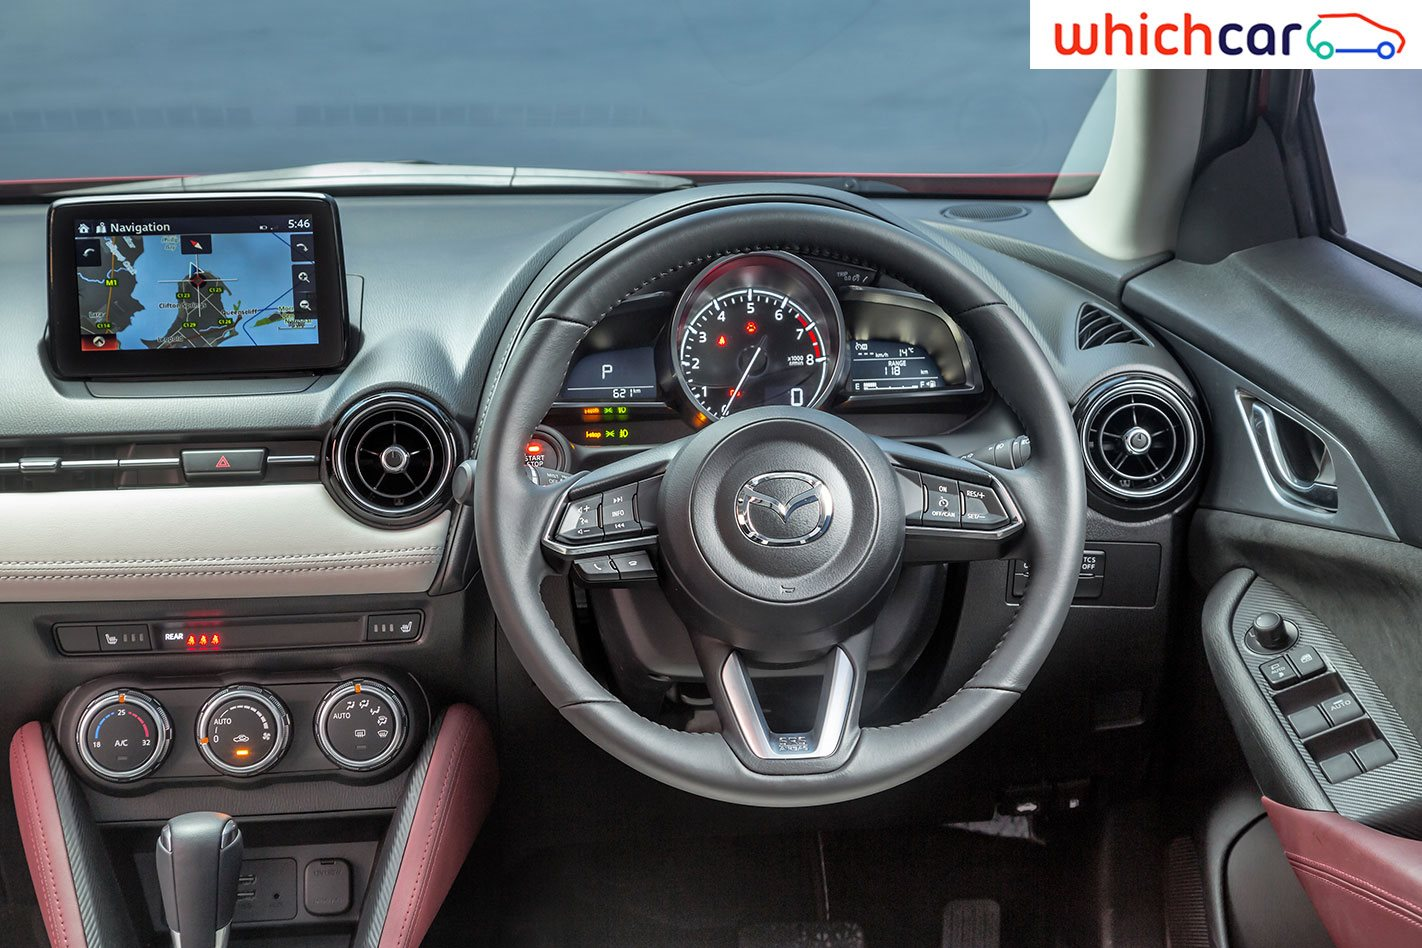 2017 mazda cx 3 grand touring review australia cars for you - 2017 Mazda Cx 3 Grand Touring Review Australia Cars For You 76